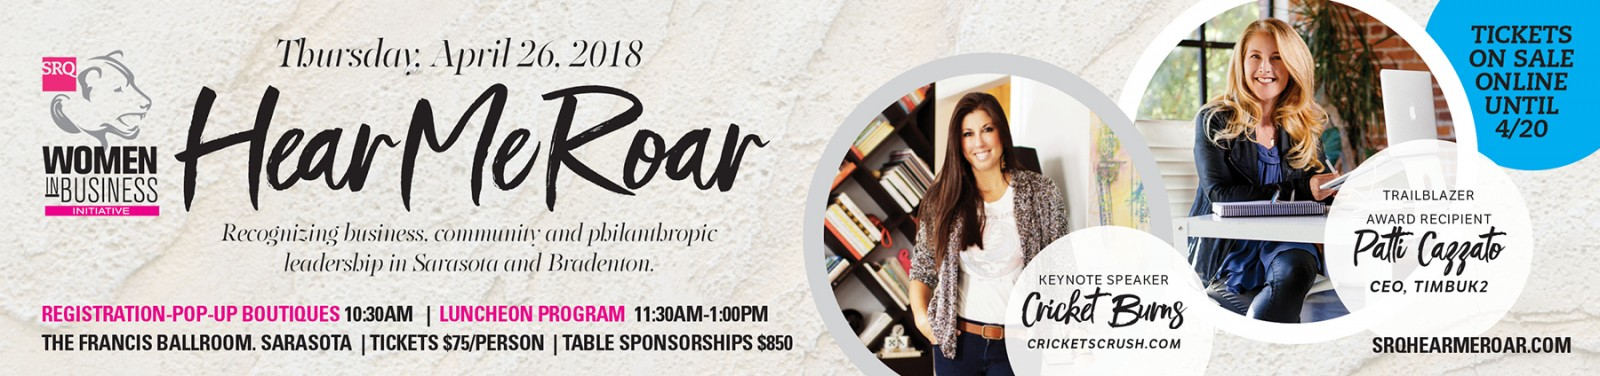 SRQ Hear Me Roar Leadership and Awards Luncheon, April 26 from 10:30am-1pm